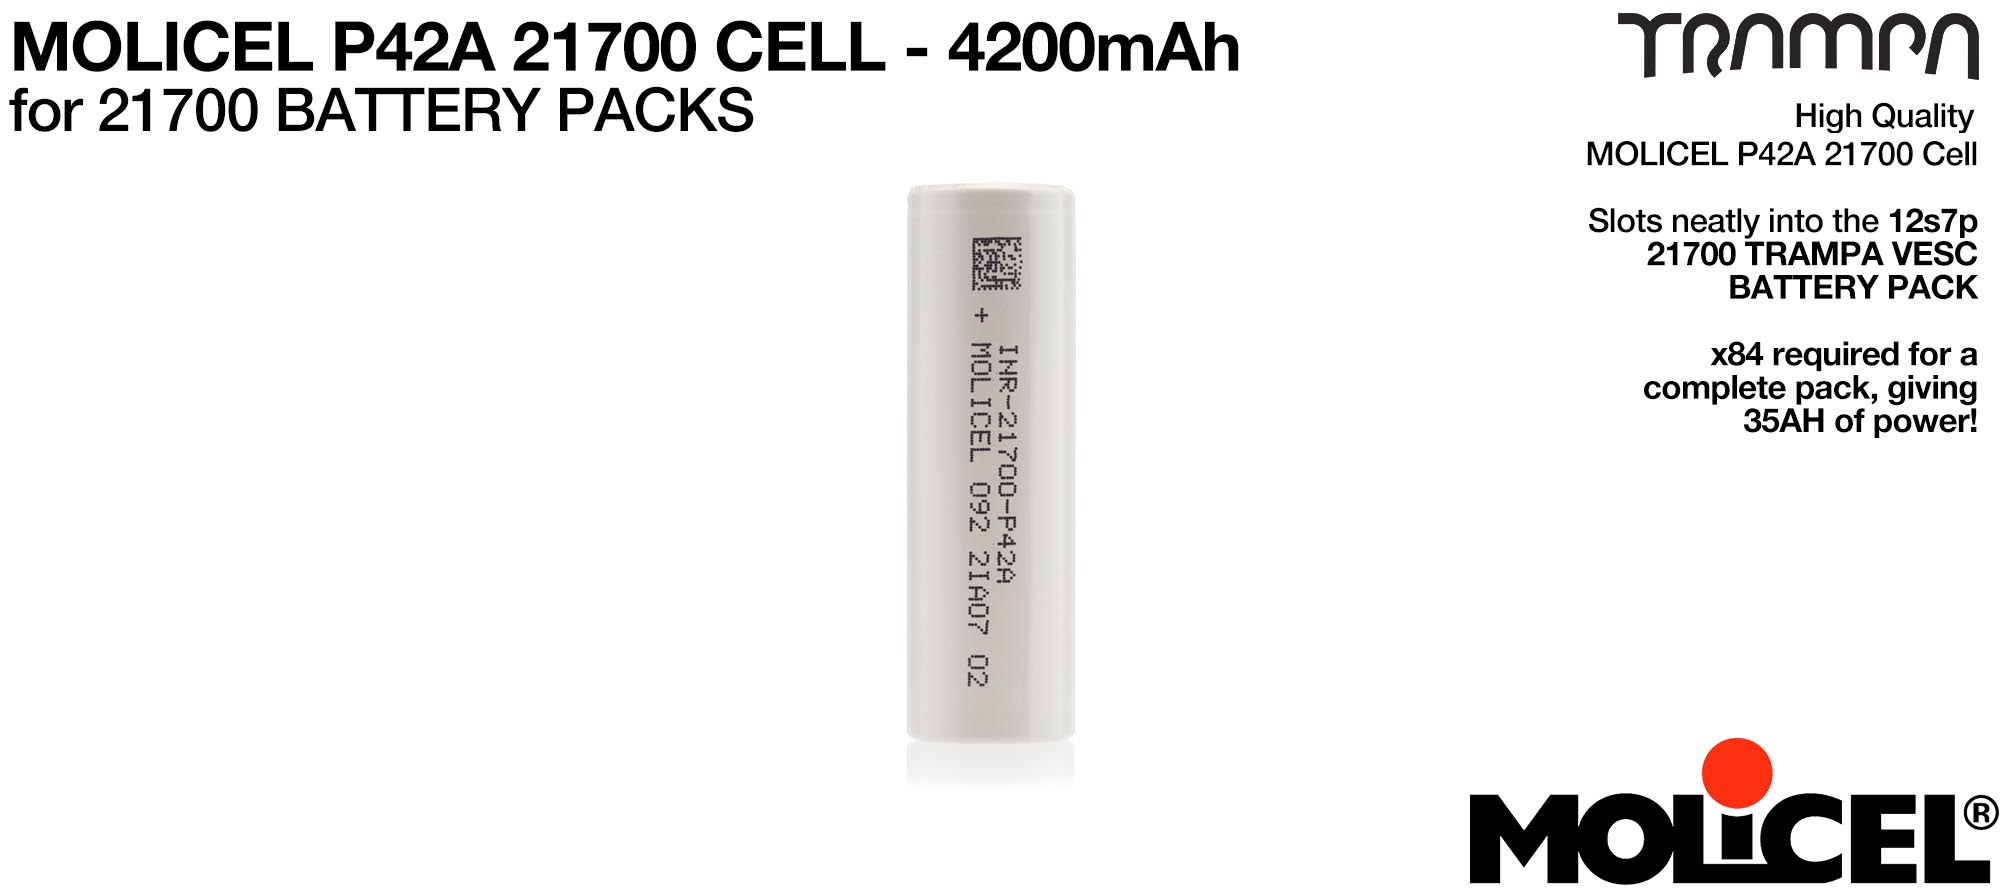 21700 Cells - MOLICEL P42A 4200mAh   - UK CUSTOMERS ONLY